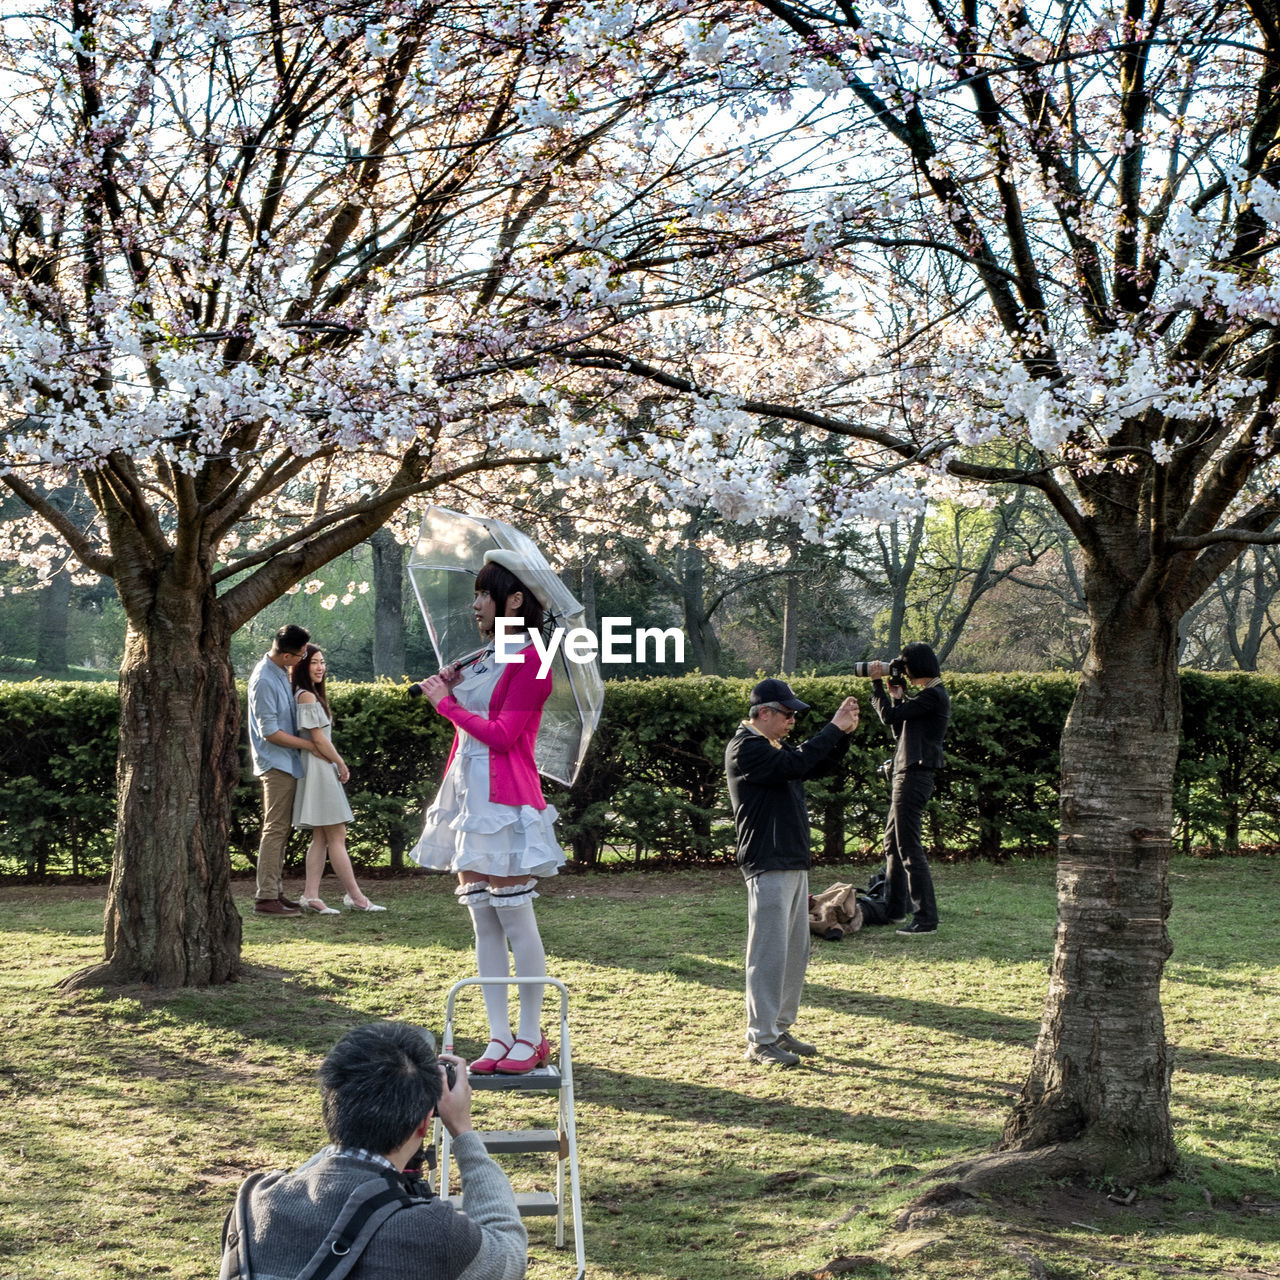 tree, women, plant, group of people, full length, adult, flower, day, grass, females, nature, men, springtime, togetherness, standing, young women, park, young adult, park - man made space, blossom, outdoors, positive emotion, couple - relationship